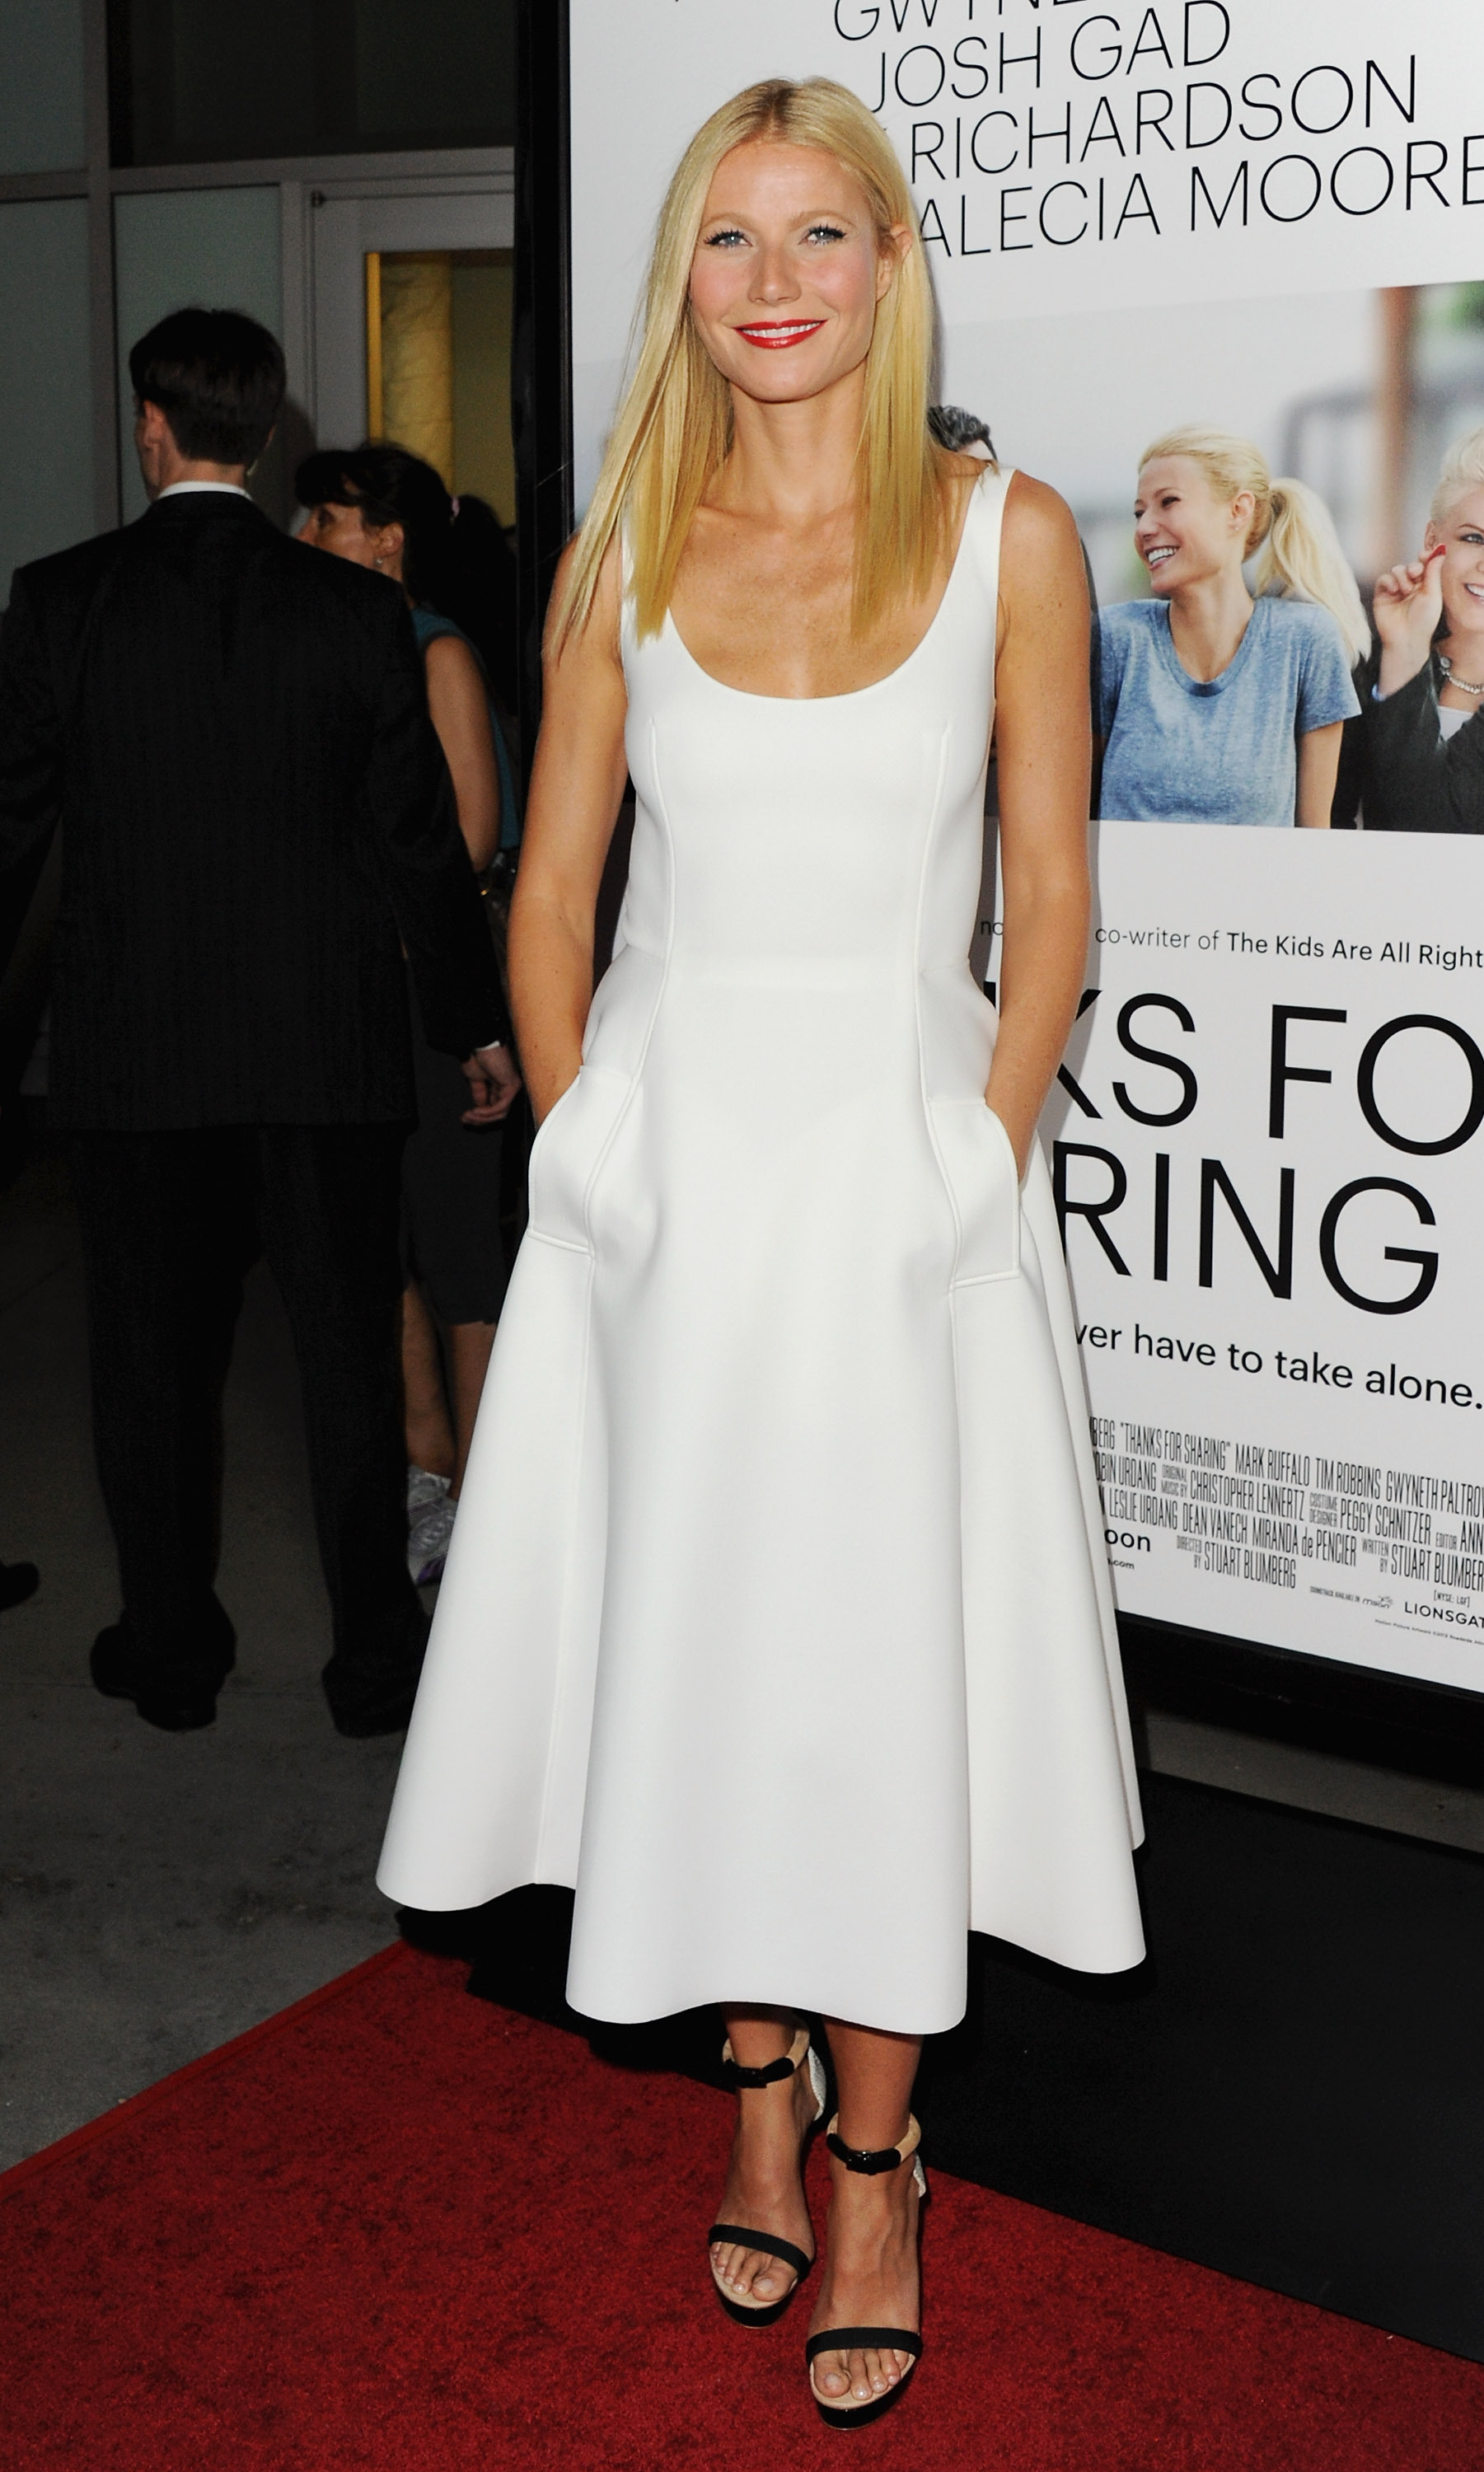 Gwyneth Paltrow in Lanvin at the Thanks For Sharing premiere.